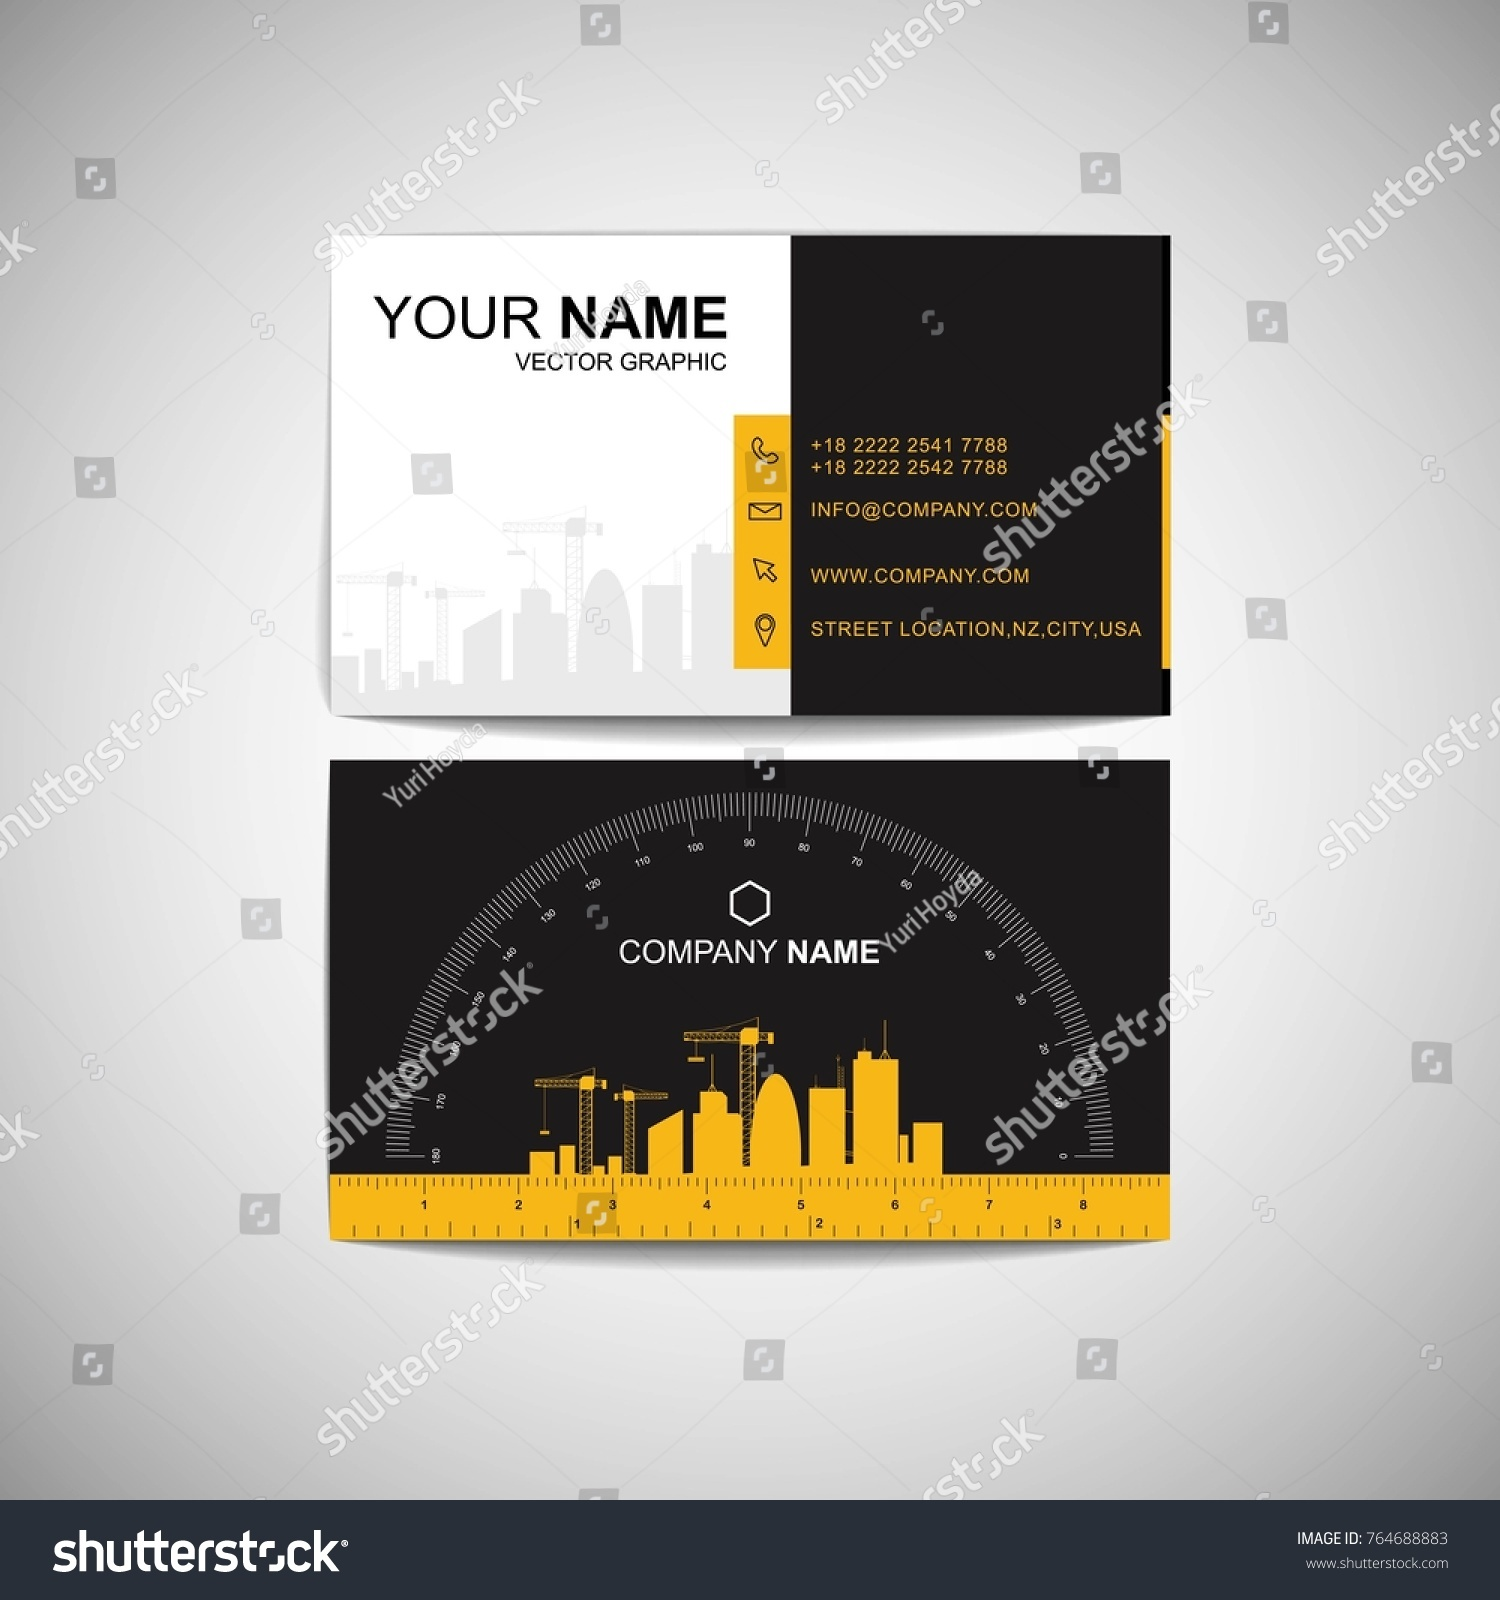 Construction business card functional design ruler stock vector construction business card functional design with ruler and protractor vector magicingreecefo Images